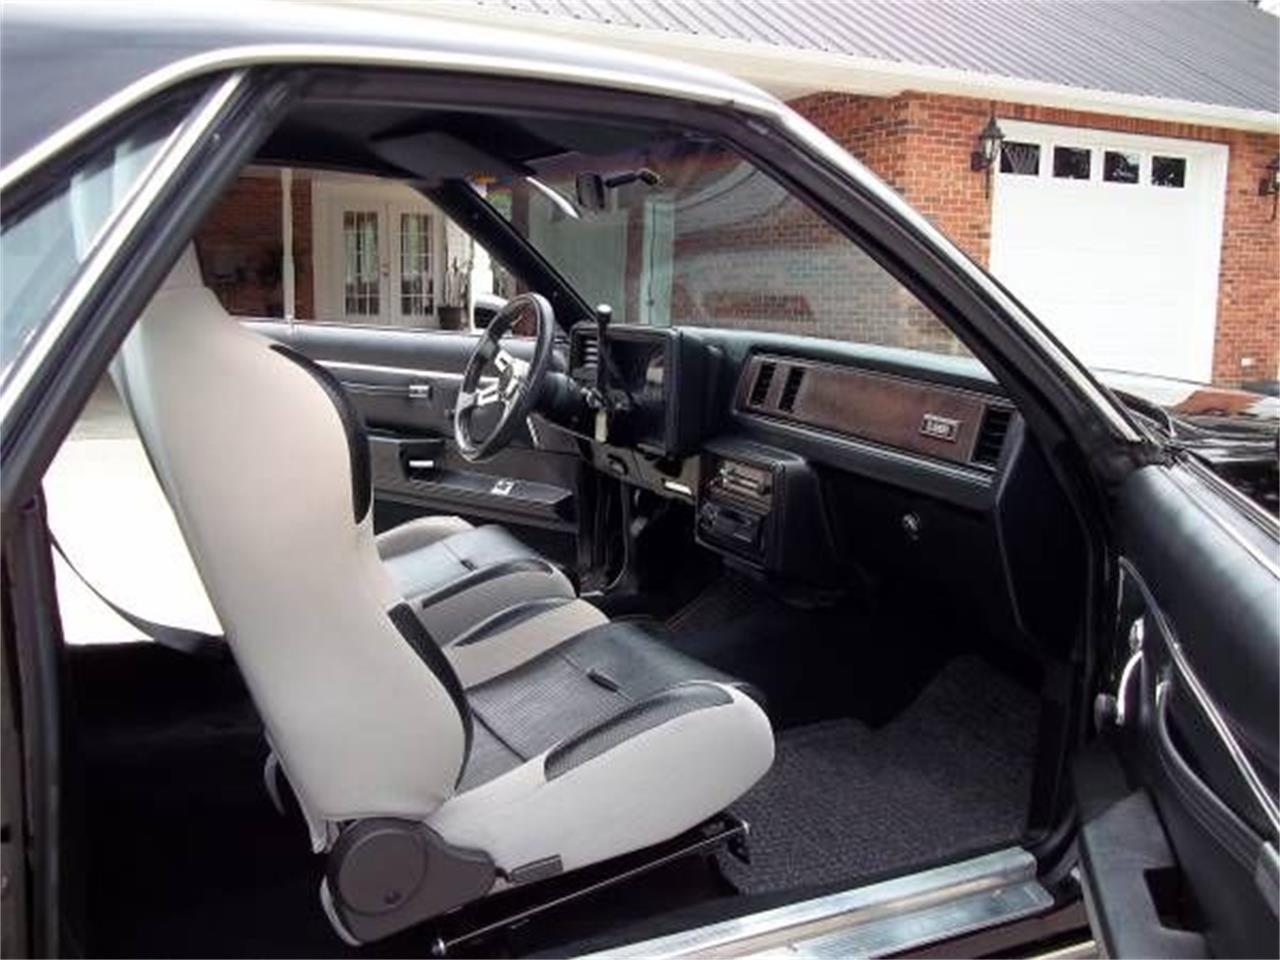 1985 Chevrolet El Camino for sale in Cadillac, MI – photo 2